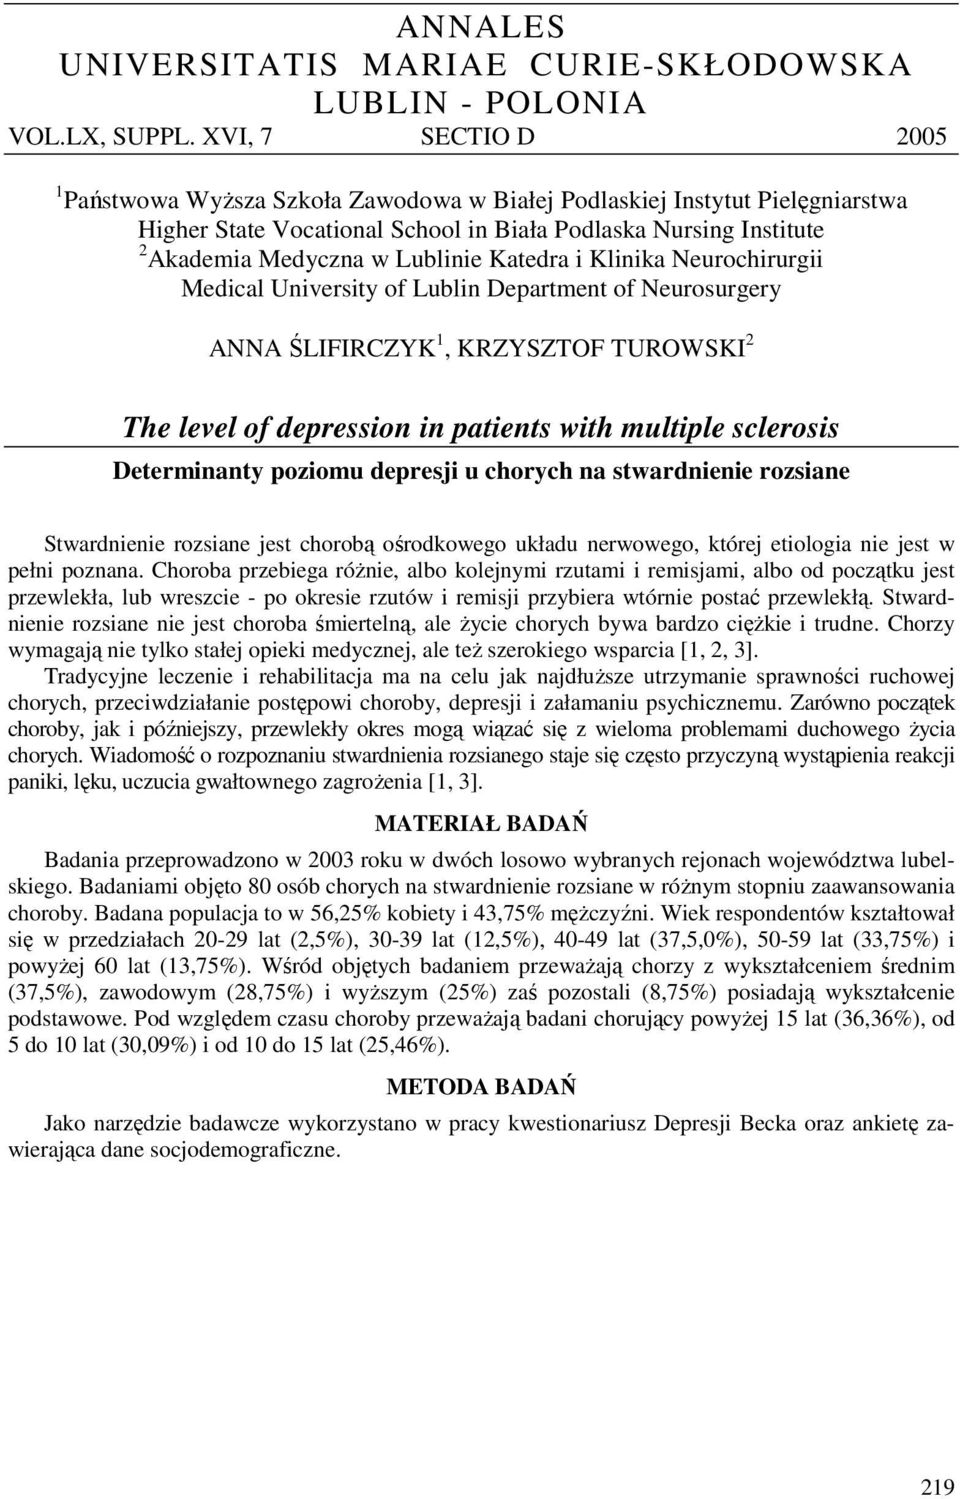 Katedra i Klinika Neurochirurgii Medical University of Lublin Department of Neurosurgery ANNA ŚLIFIRCZYK 1, KRZYSZTOF TUROWSKI The level of depression in patients with multiple sclerosis Determinanty